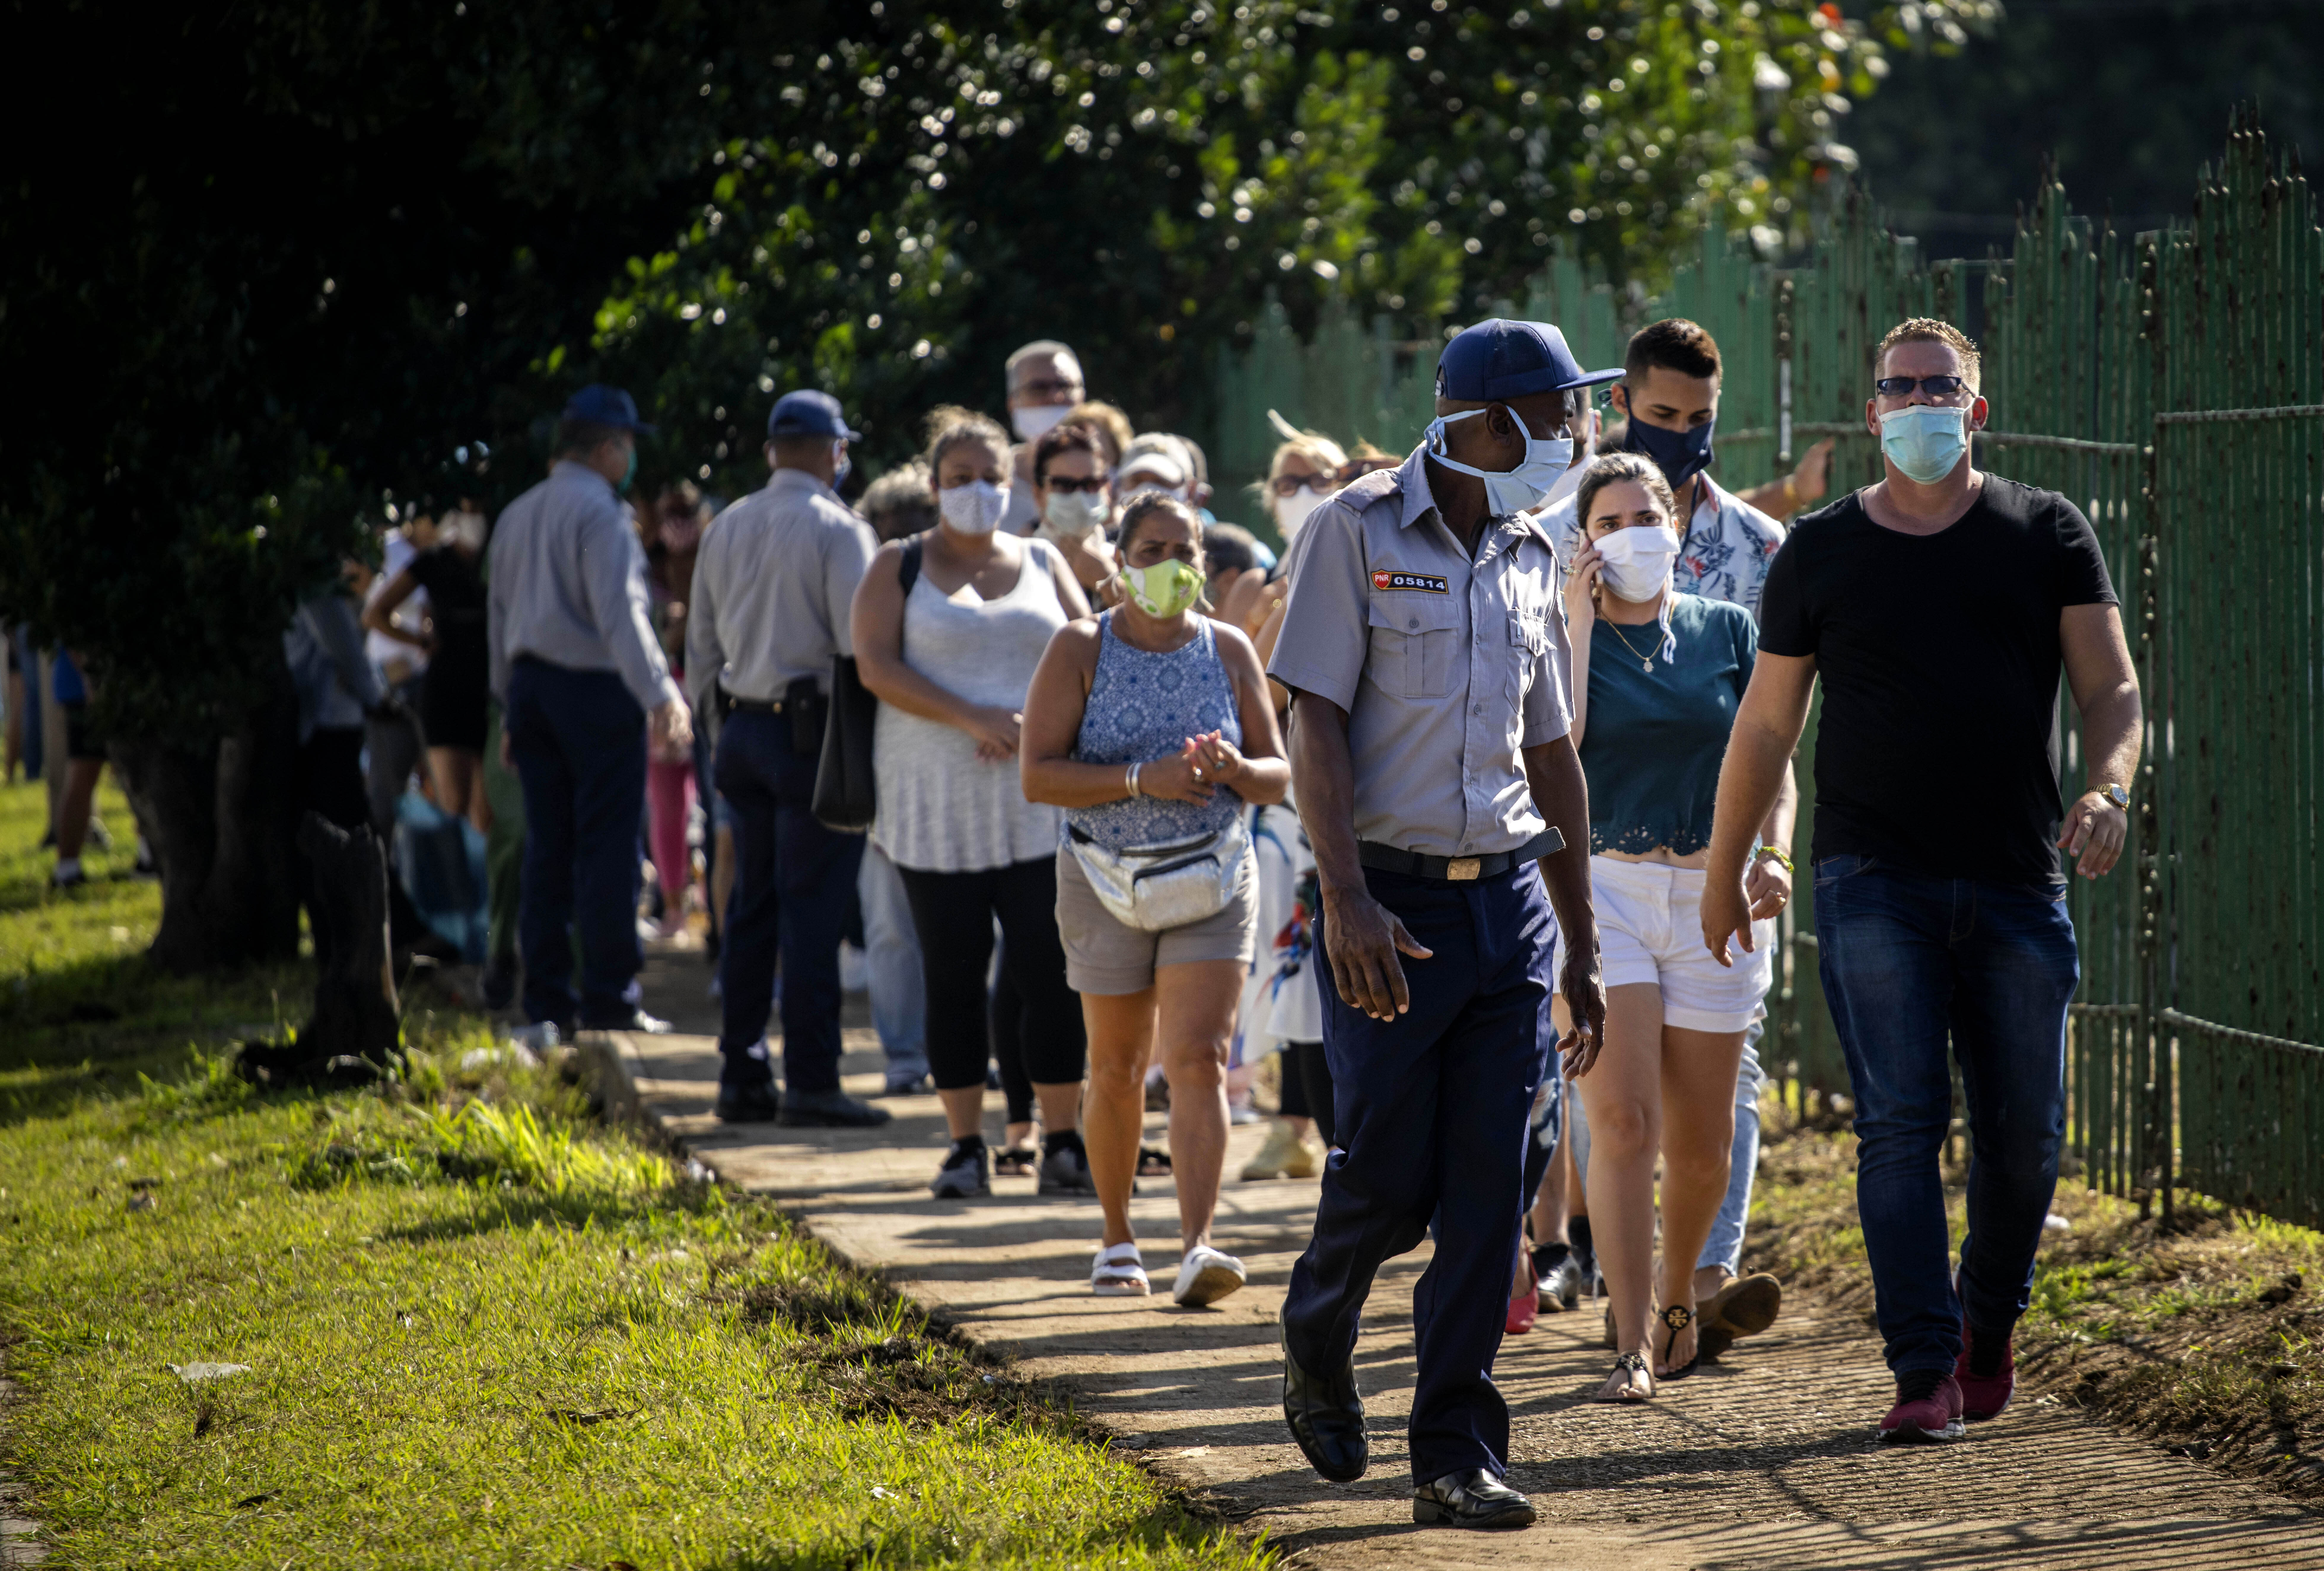 People wearing protective face masks as a precaution amid the spread of the new coronavirus line up to enter a grocery store that accepts U.S. dollars in Havana, Cuba, Monday, July 20, 2020. Cuba has expanded the types of stores that accept dollars for payment to include food stores, as part of the government's effort to capture much needed hard currency to shore up the island's ailing economy. (AP Photo/Ramon Espinosa)